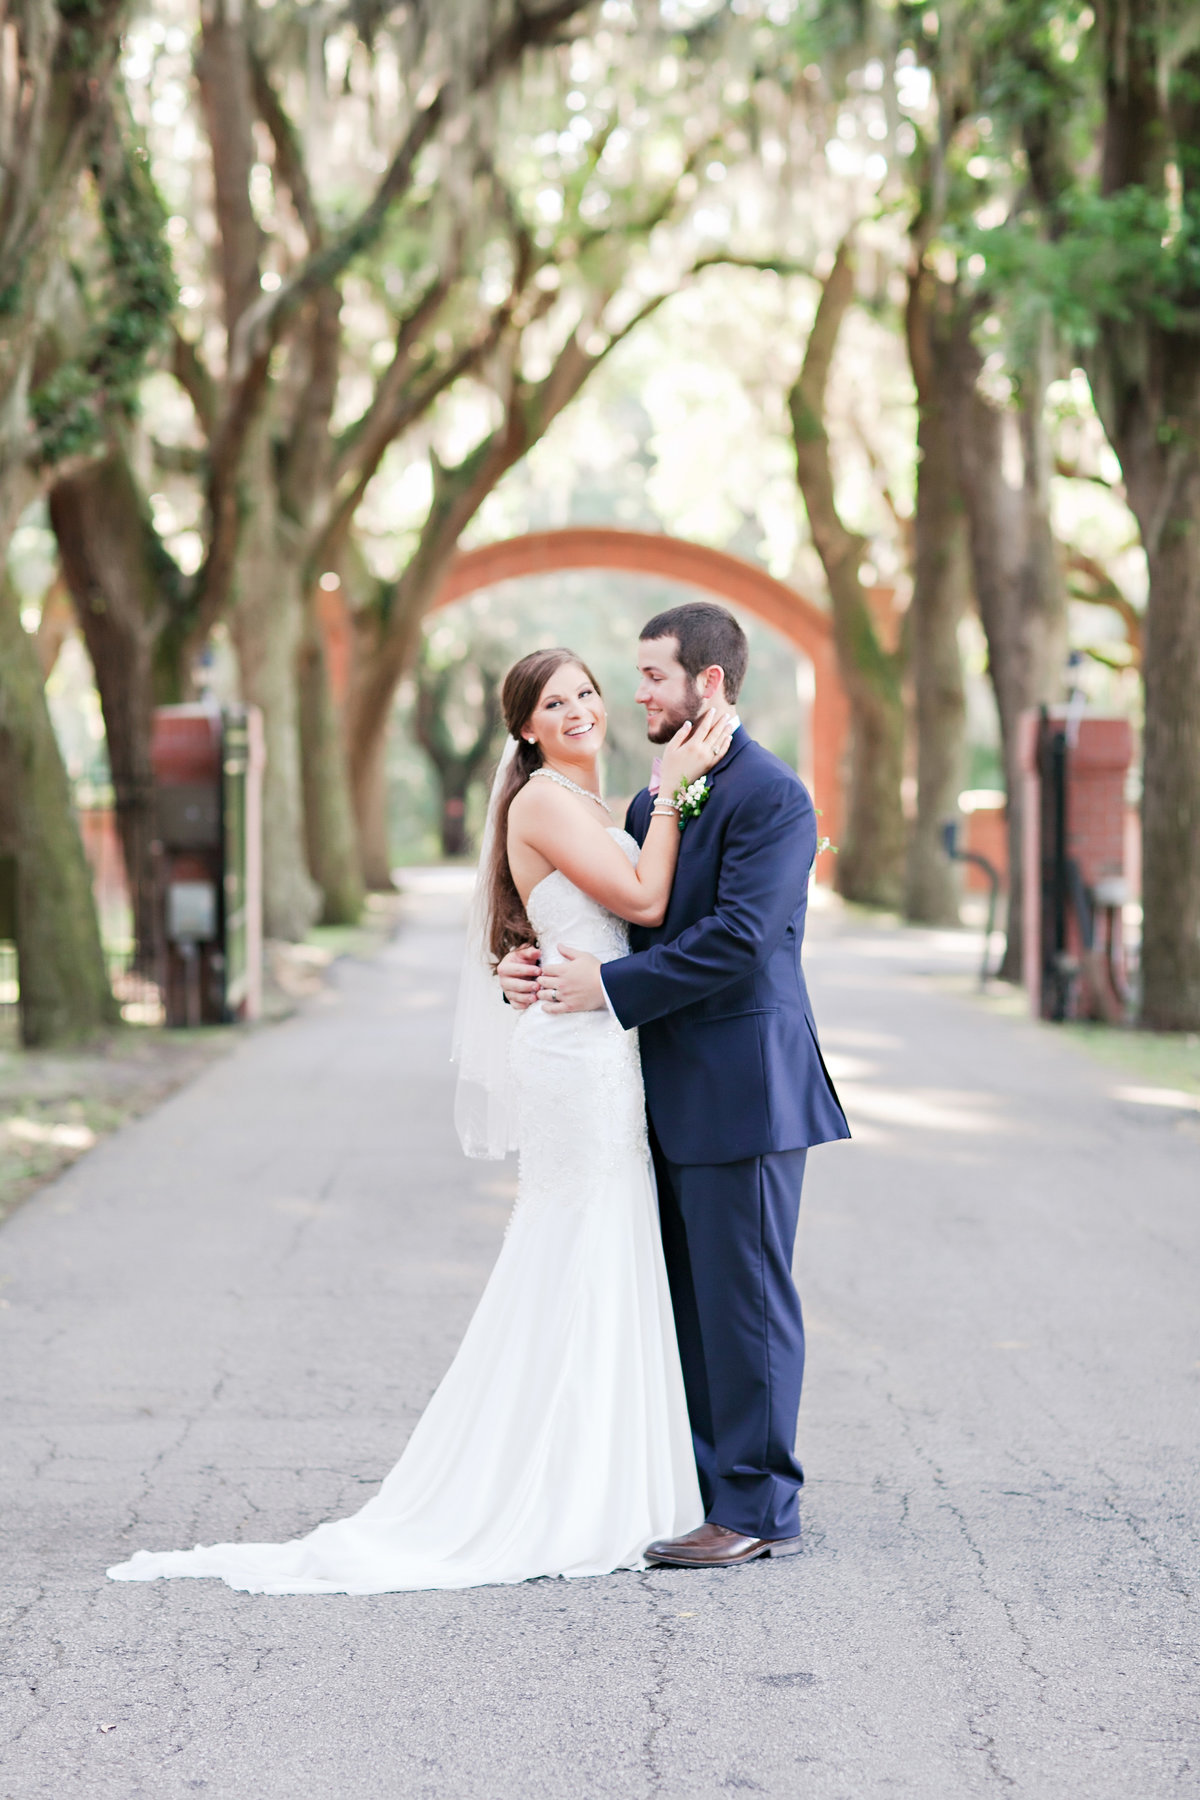 Savannah Whitefield Bethesda Spring Wedding Bride Groom Pink Navy Peonies Portrait Romantic